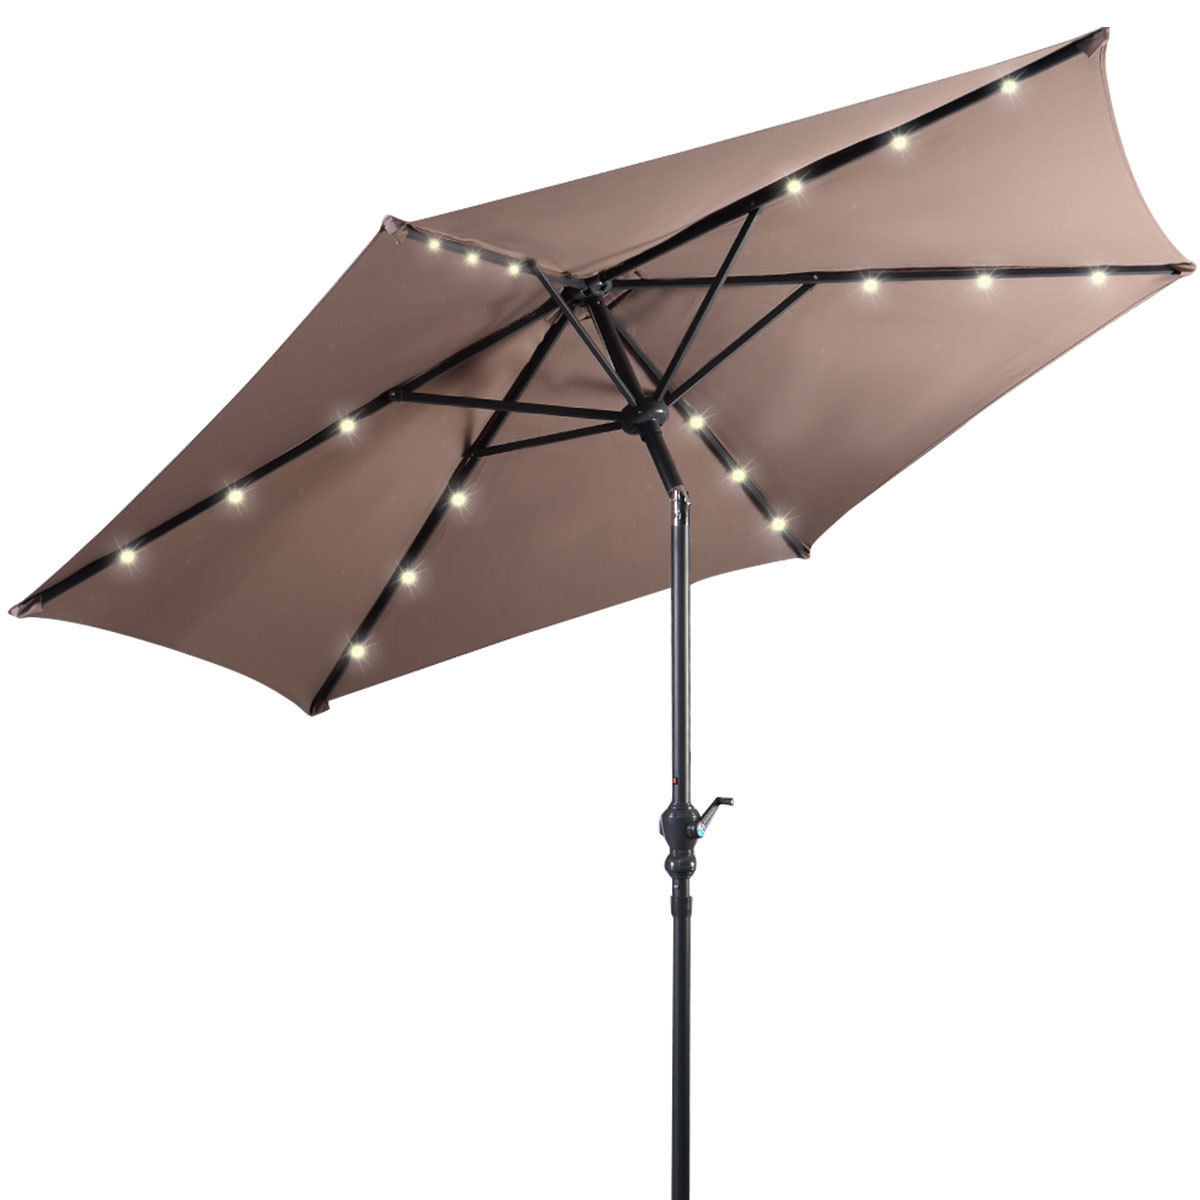 Costway 9ft Patio Solar Umbrella LED Patio Market Steel Tilt W/ Crank Outdoor (Tan)